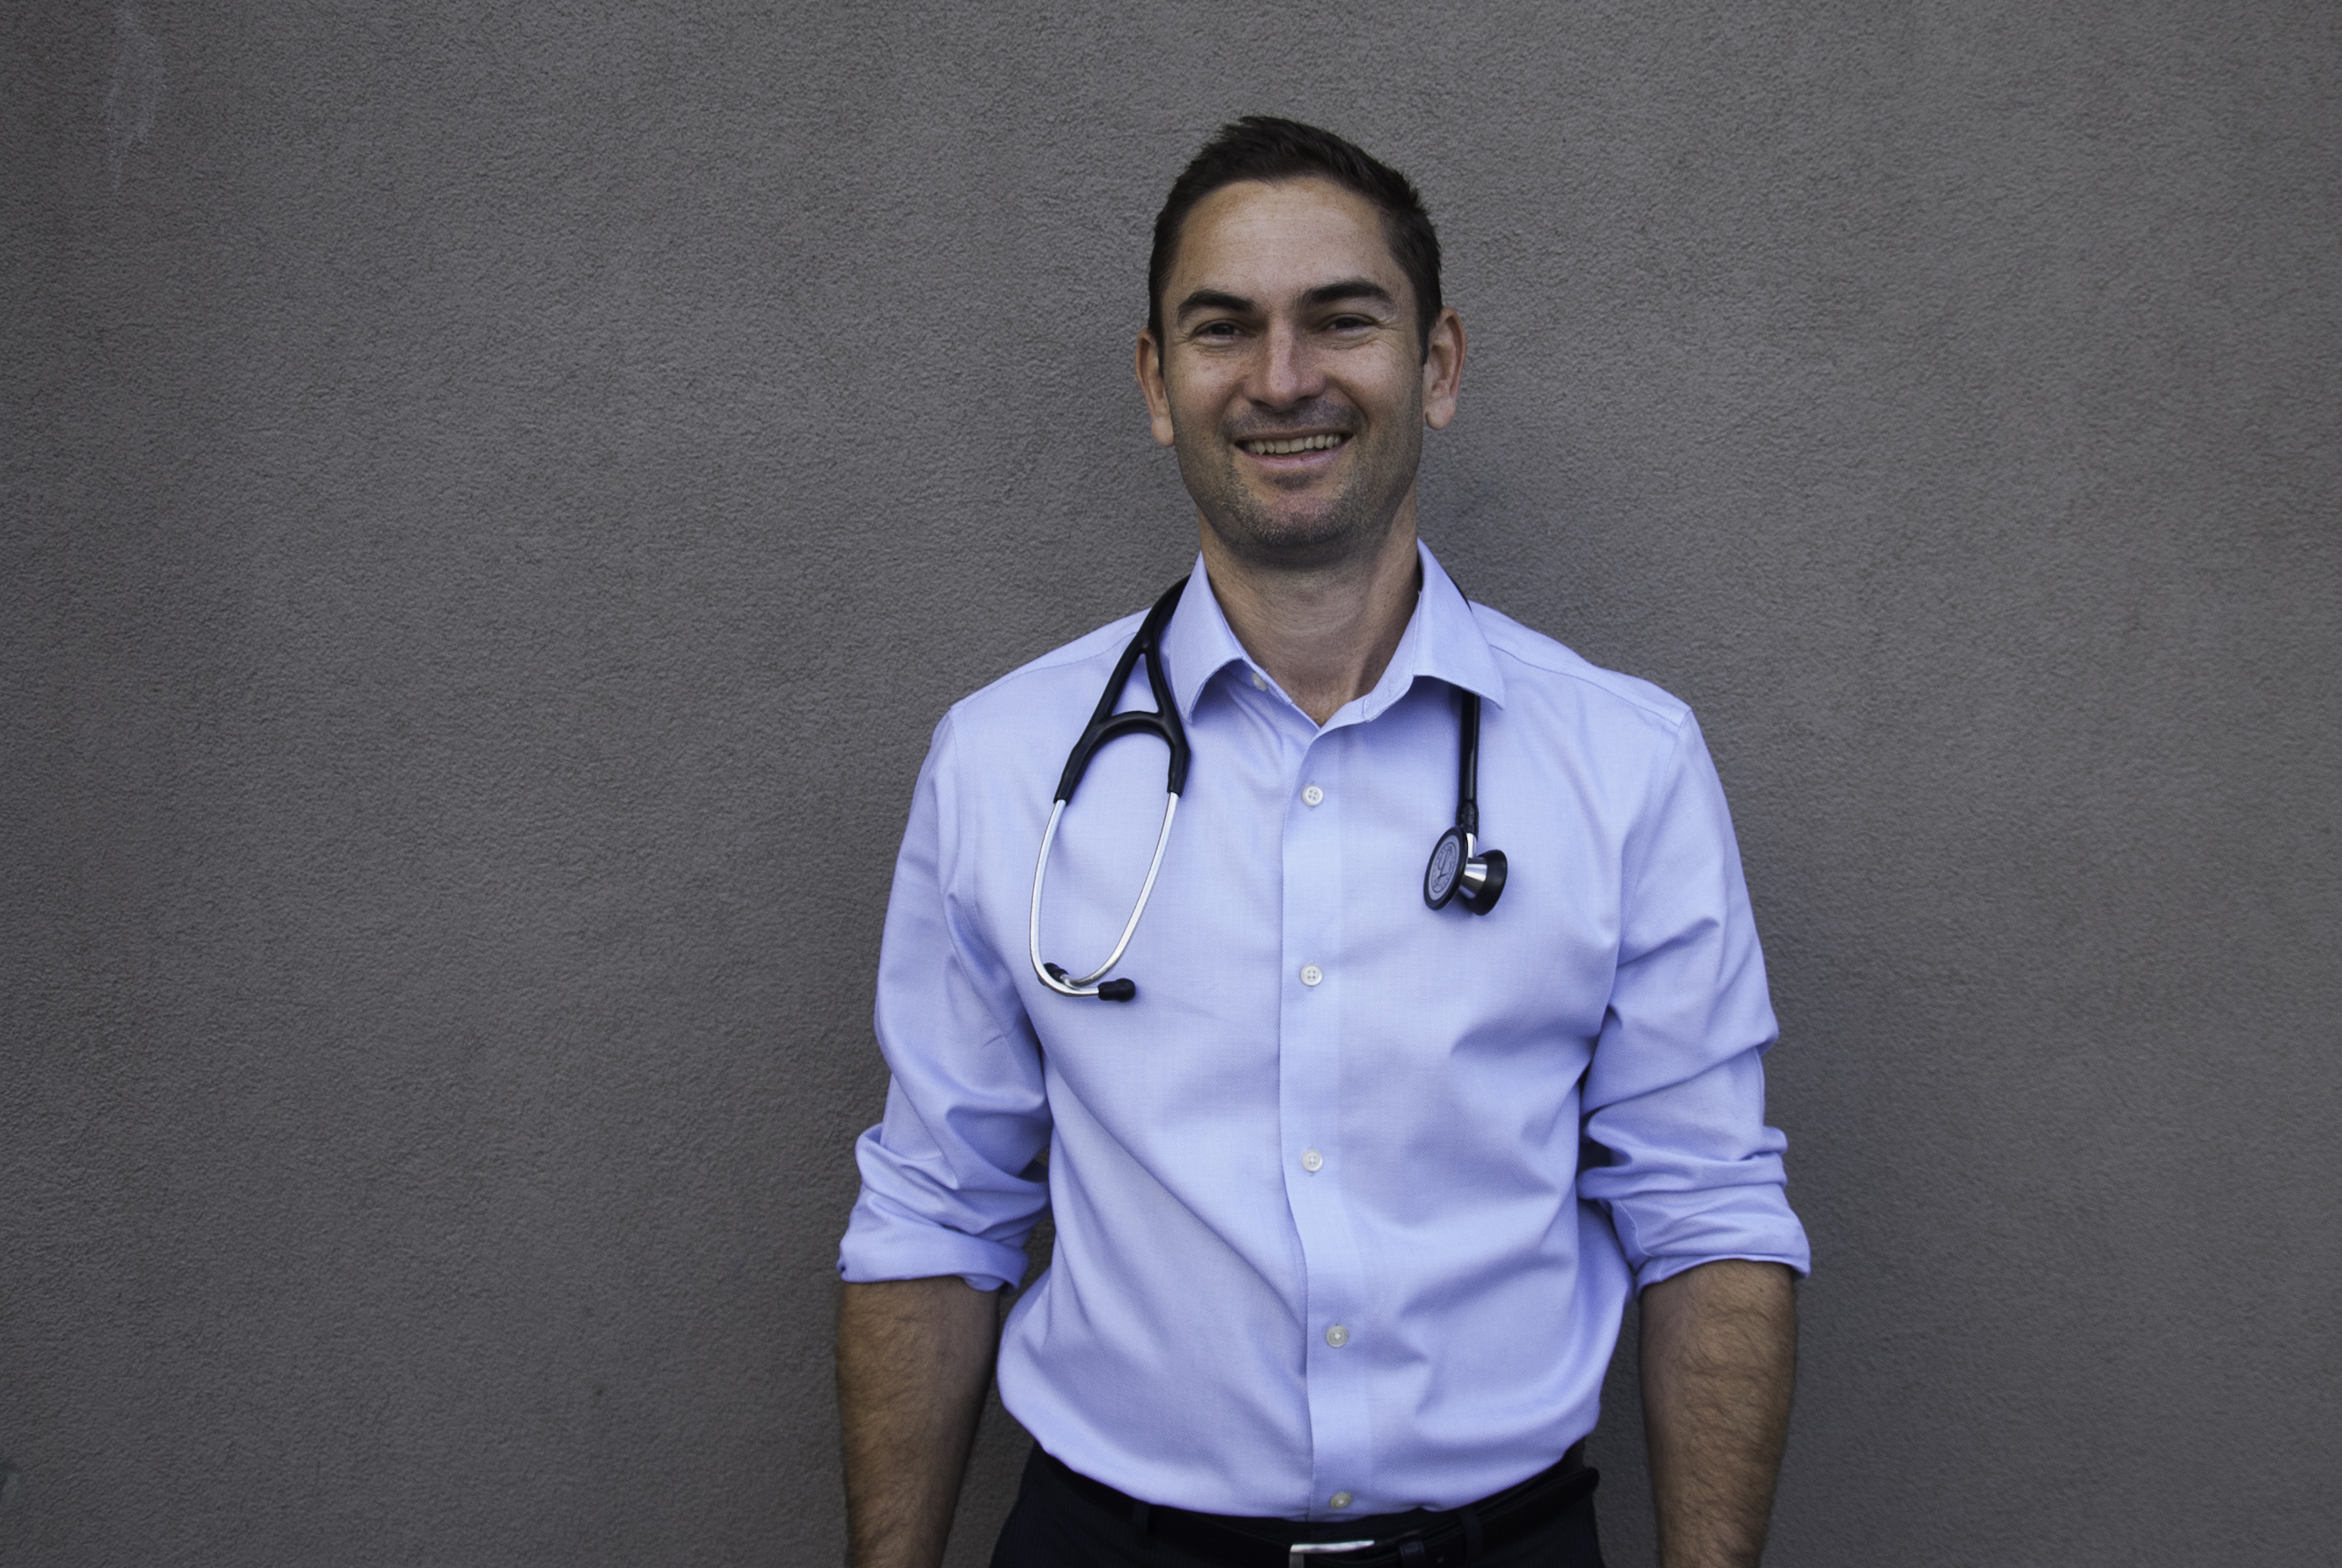 Dr Ignacio joined our practice in 2006 and loves the team he gets to work with at Granville Island.  Originally from Hawaii, Bill graduated from Colorado State University's veterinary program and worked at a horse practice in Calgary before finding his way to the BC coast.  His practice interests include preventive health, managing cardiac disease and playing with kittens.  In his off hours he enjoys kayaking and trail running.  He has a soft spot for Australian Shepherds and an intense aversion to avocados.